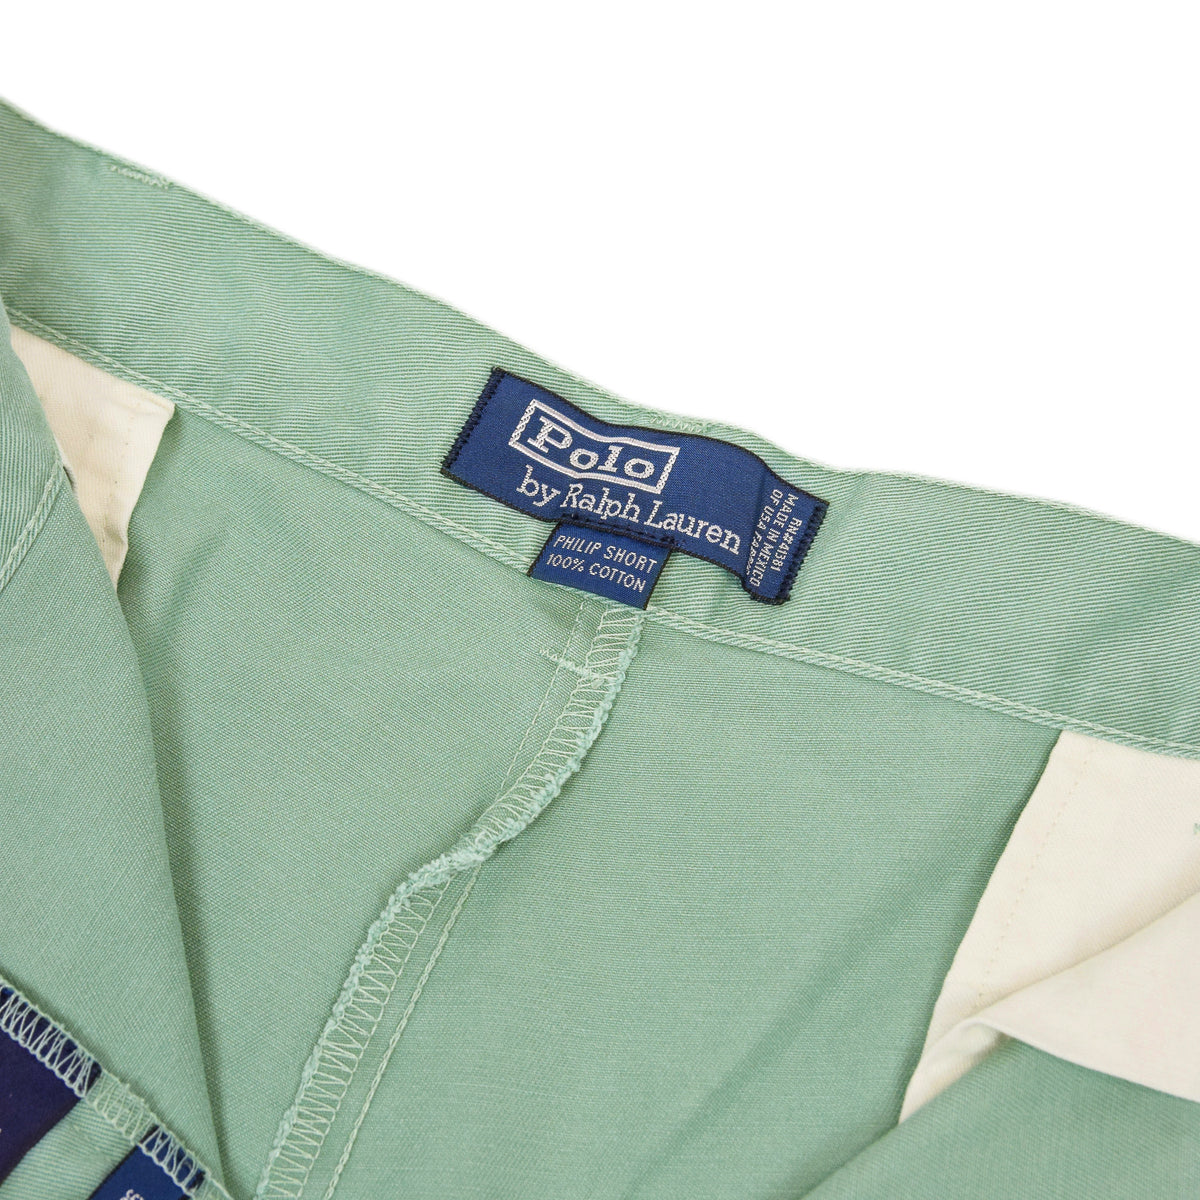 Vintage 90s Polo Ralph Lauren Philip Green Cotton Chino Shorts 36 W logo label